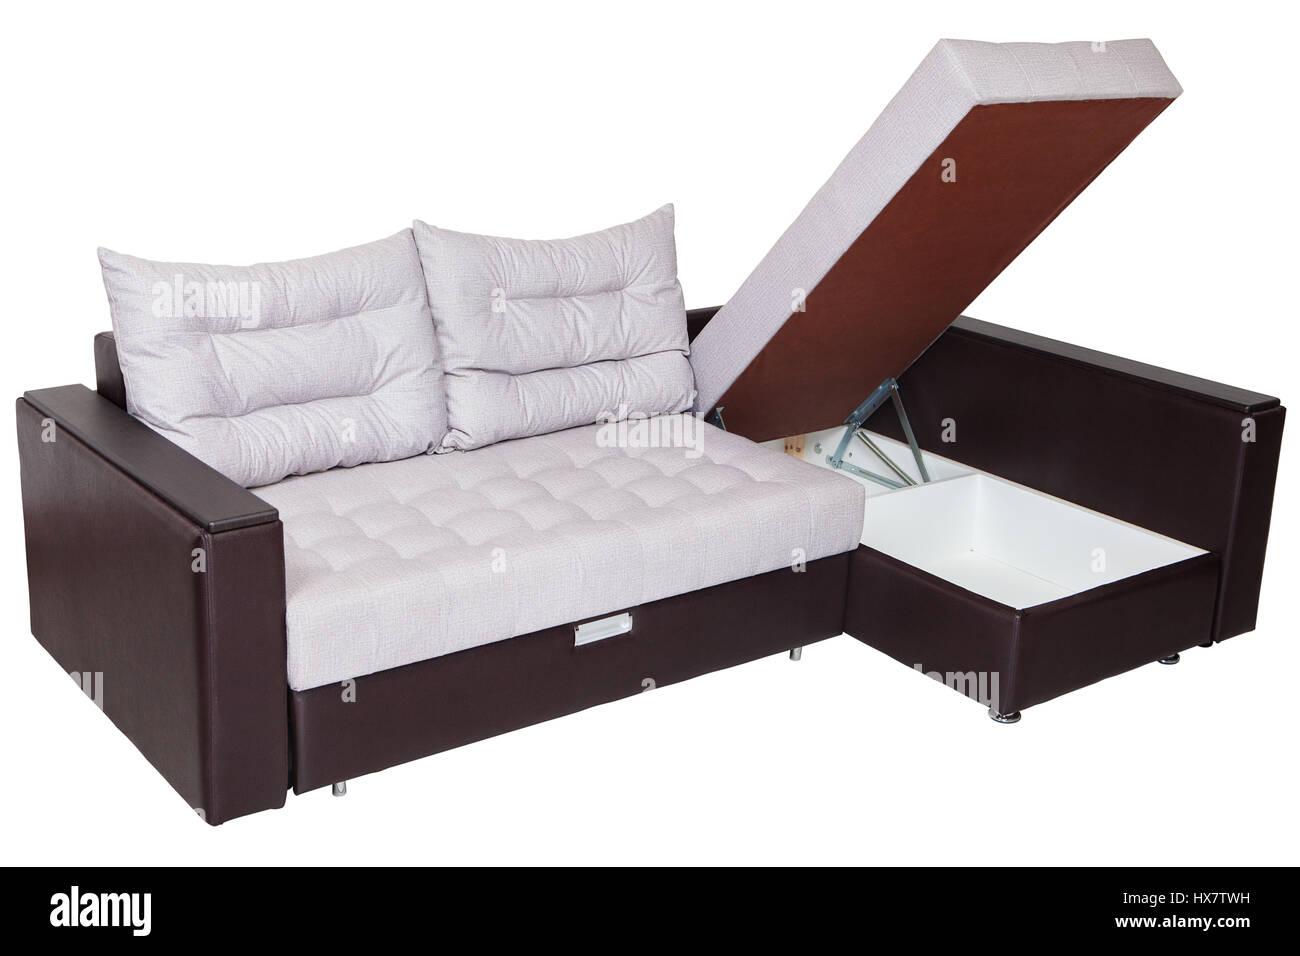 Corner convertible sofa-bed with storage space, upholstery ...